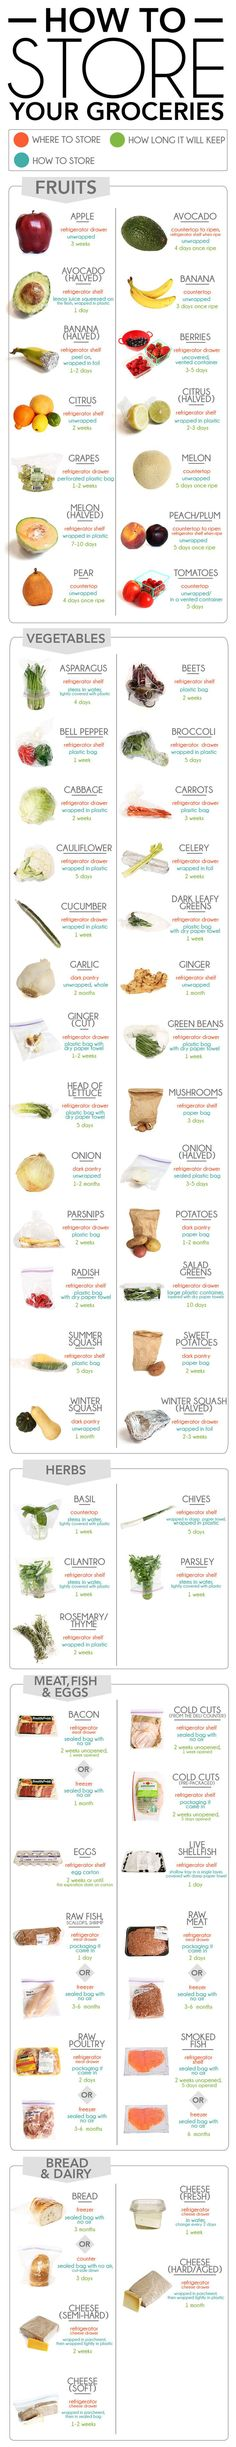 How to store your groceries chart ~ perfect to print for the pantry binder or wall.